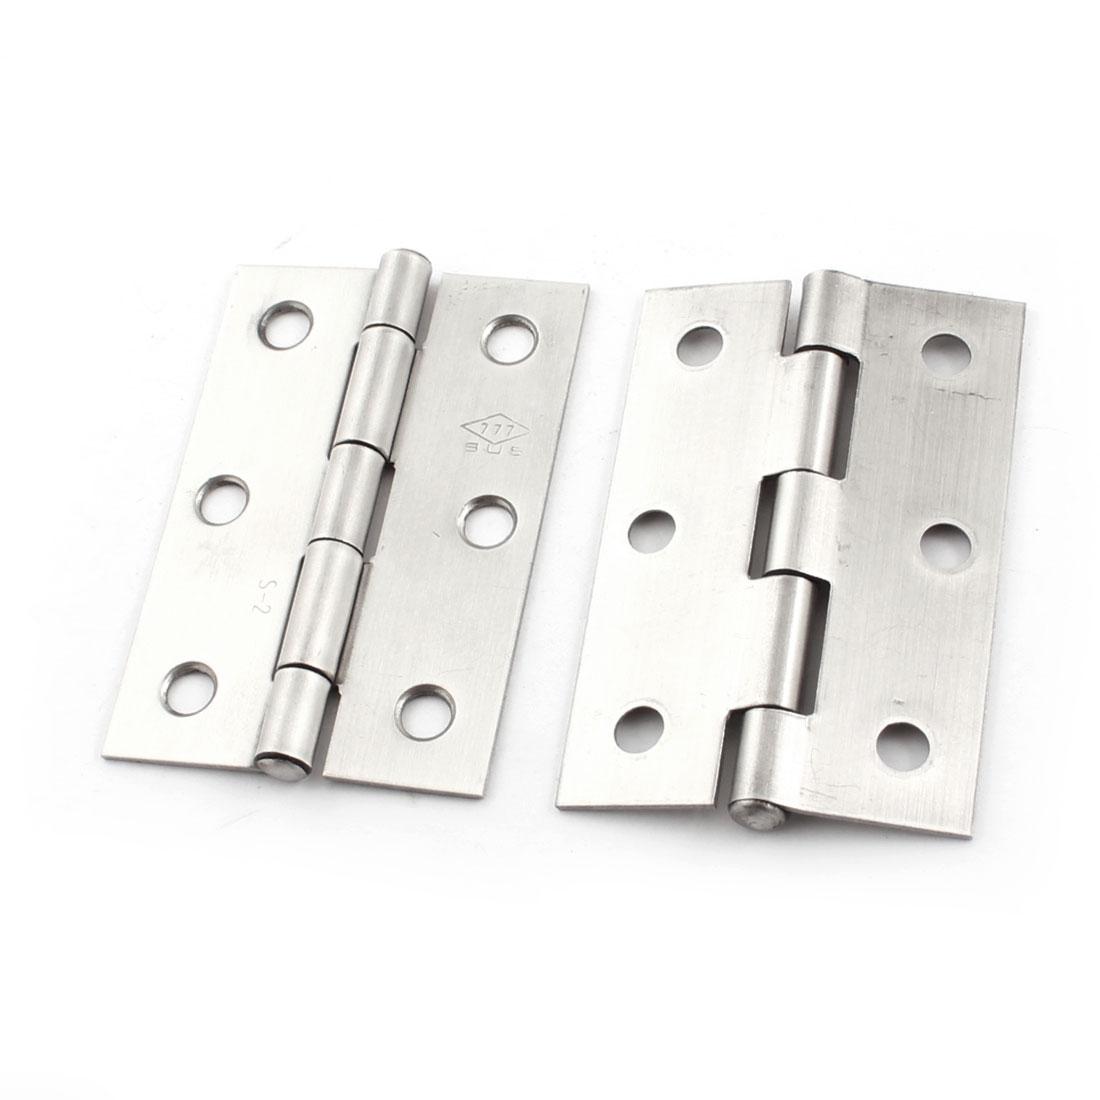 "2 Pcs Screws Mounted Silver Tone Cabinet Door Butt Hinges 2.5"" Long"